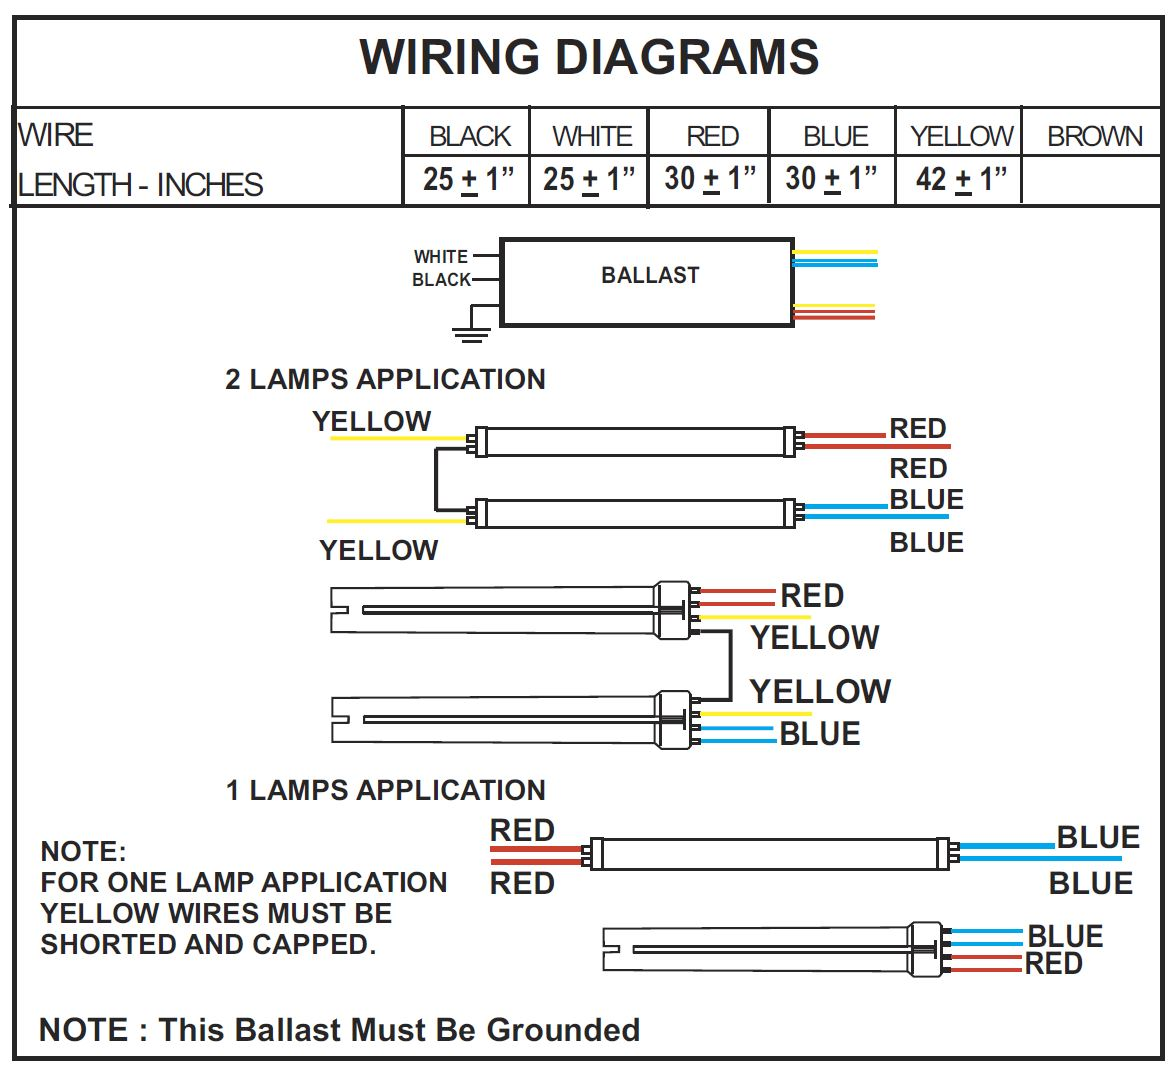 Ballast Wiring Diagram T8 - Wiring Diagram